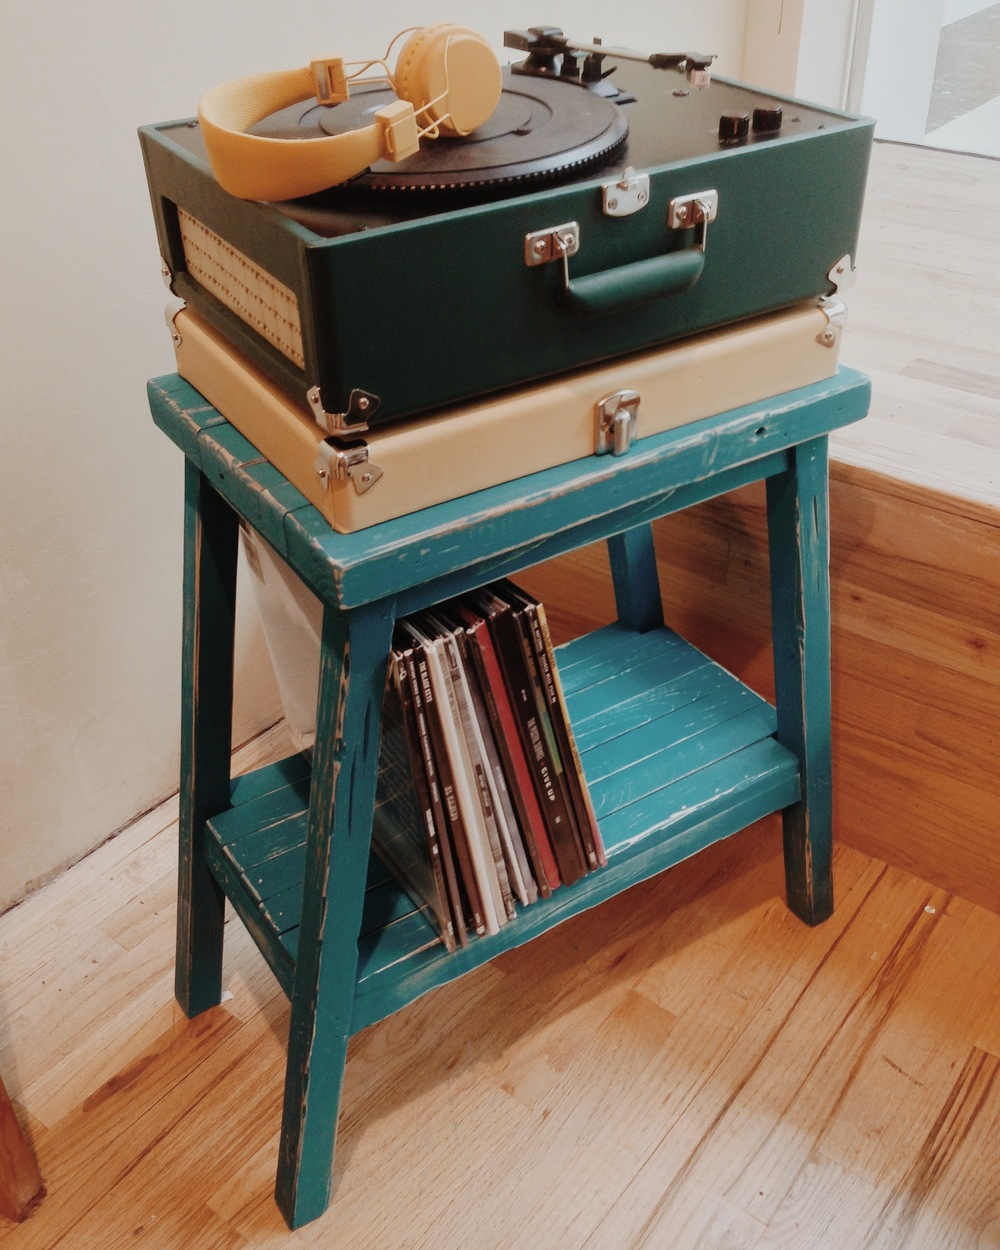 Aged record player stand created from scrap materials